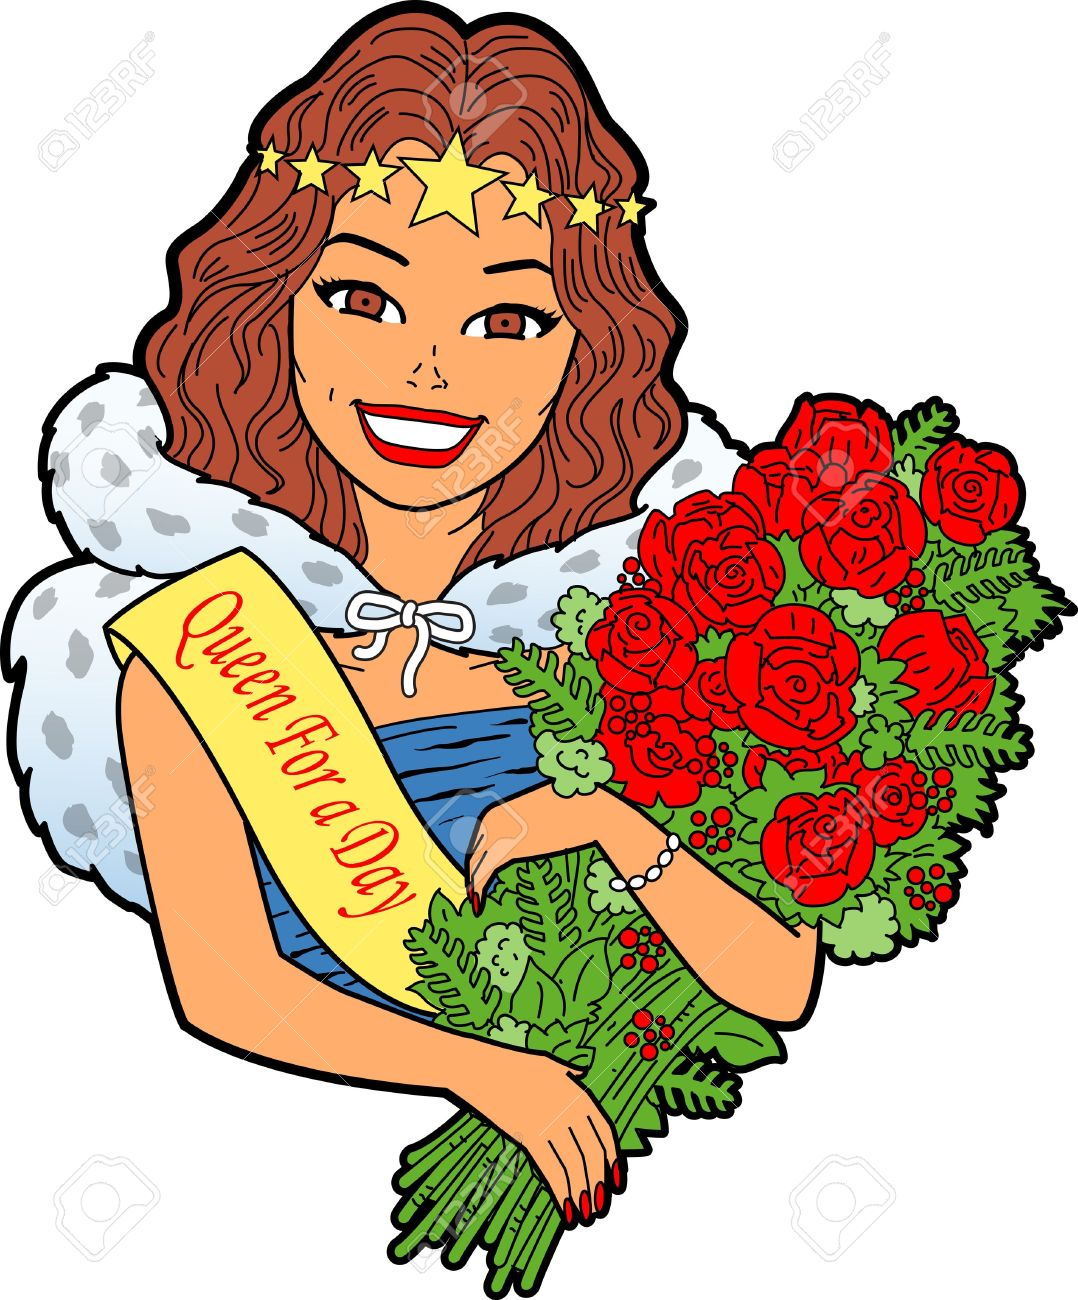 Beautiful clipart beuty. Sash pencil and in